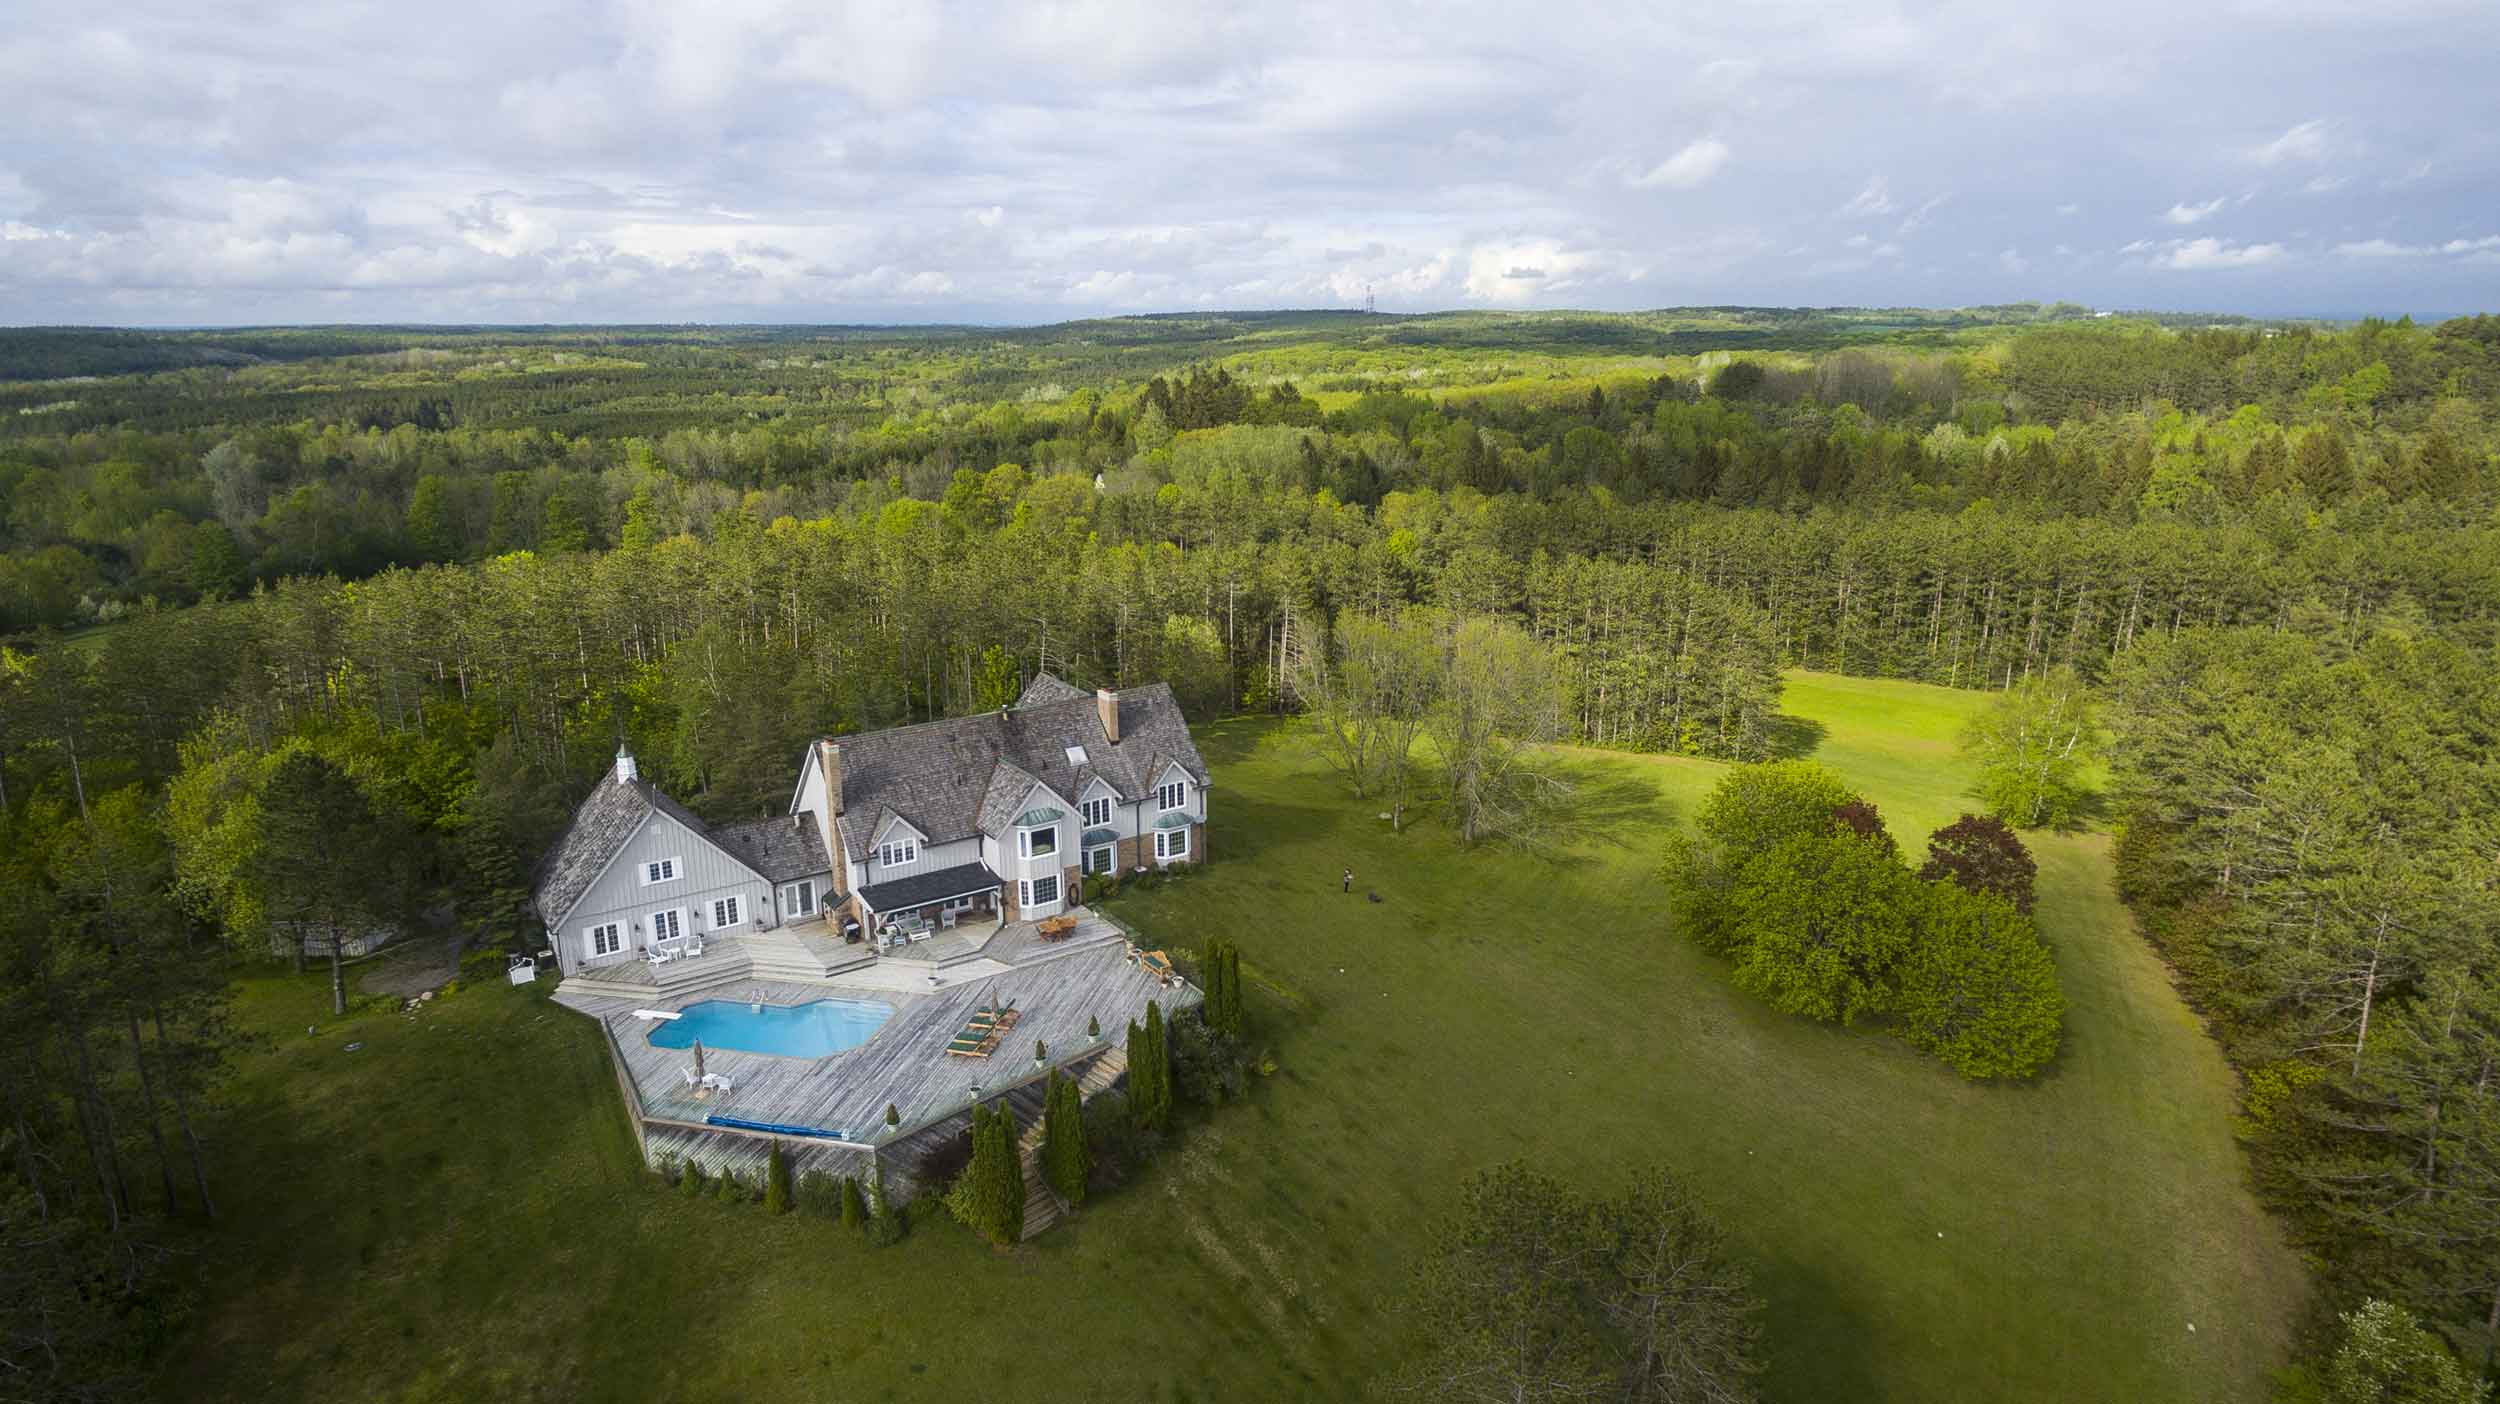 The Oak Ridges Moraine, an ecologically important geological landform, forms the backdrop of this 56-acre estate in south-central Ontario.